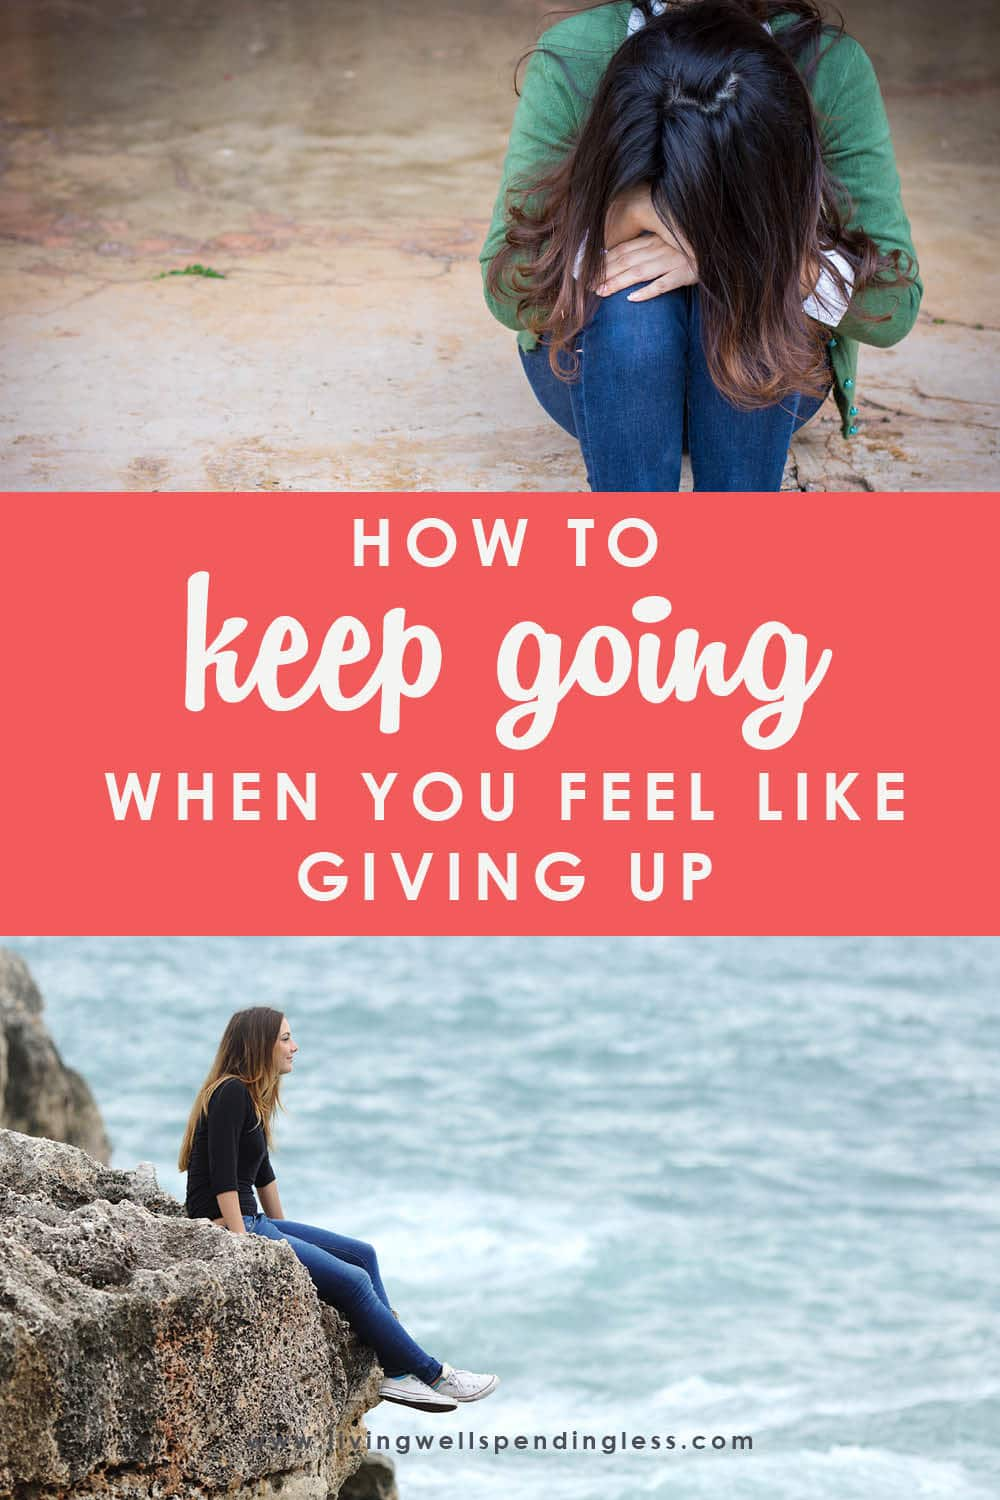 Have you ever felt like giving up? Ruth talks about how having the grit and persistence to persevere is the key to success, and how YOU can keep going even when the going gets tough! #livingwellspendingless #ruthsoukup #doitscaredpodcast #inspiration #motivation #doitscared